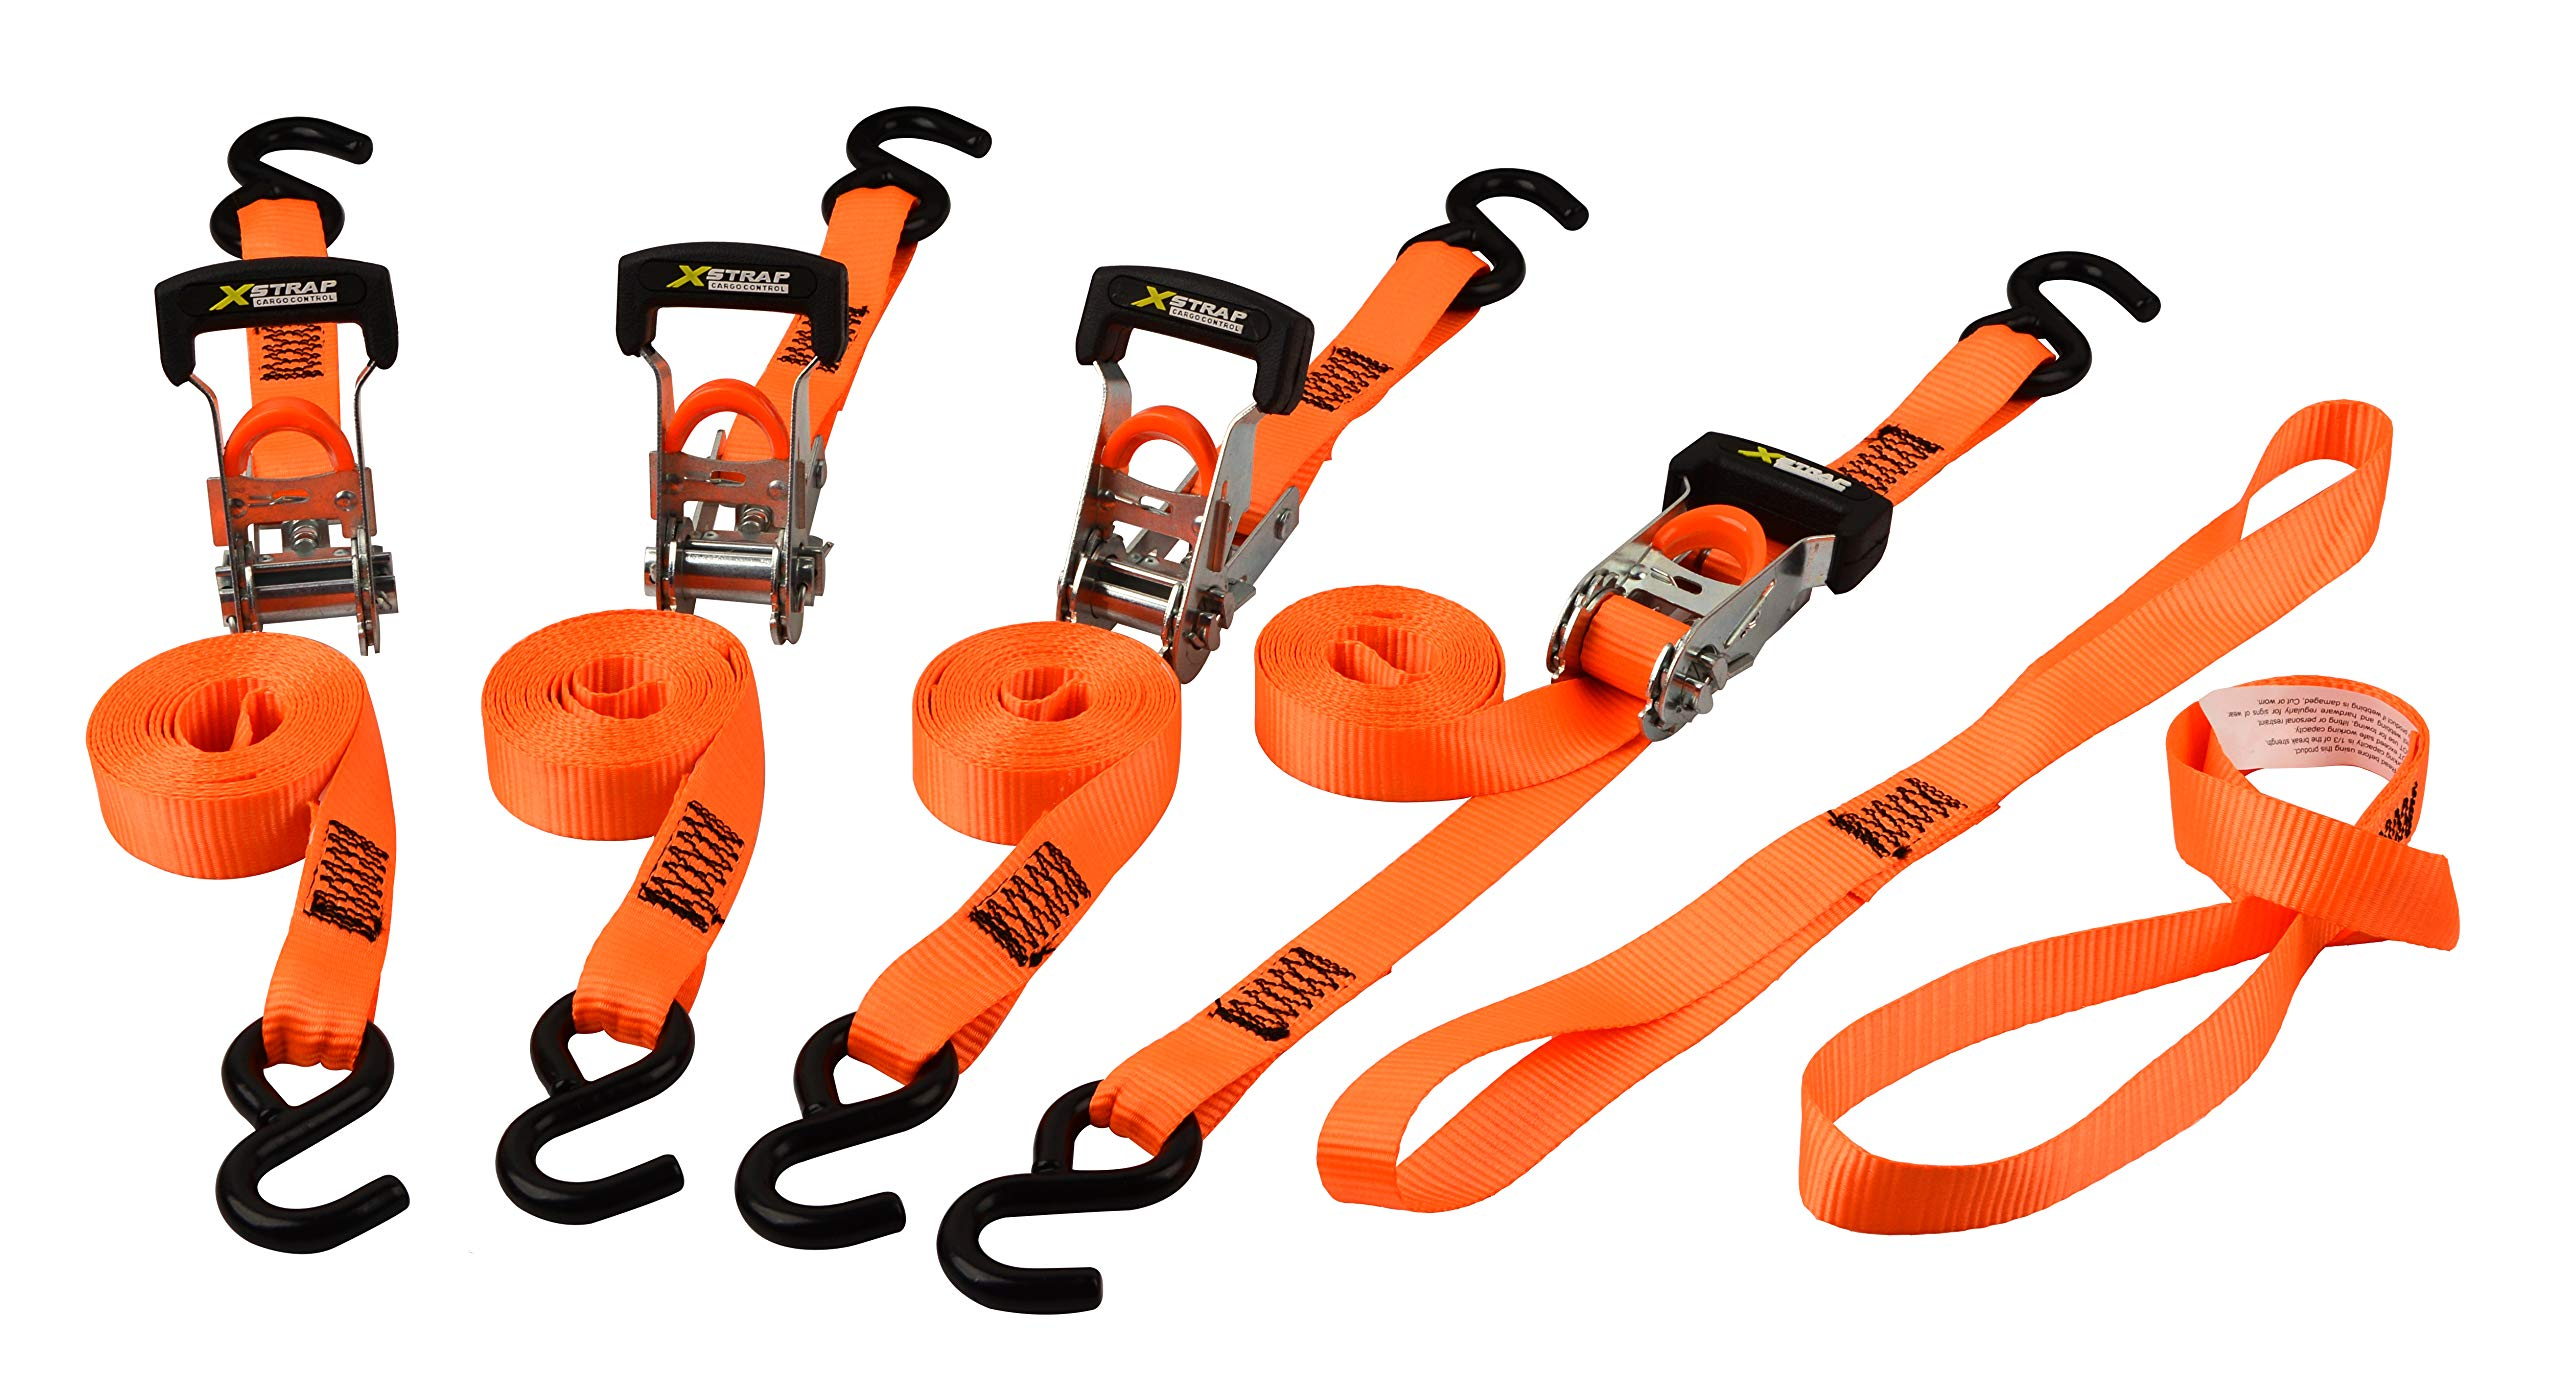 Xstrap Ratchet Tie Down Straps - 4 Pk - 10Ft- 1000 Lbs Load Cap- 3000 Lb Break Strength-Cargo Straps for Moving Appliances, Lawn with Two Soft Loops